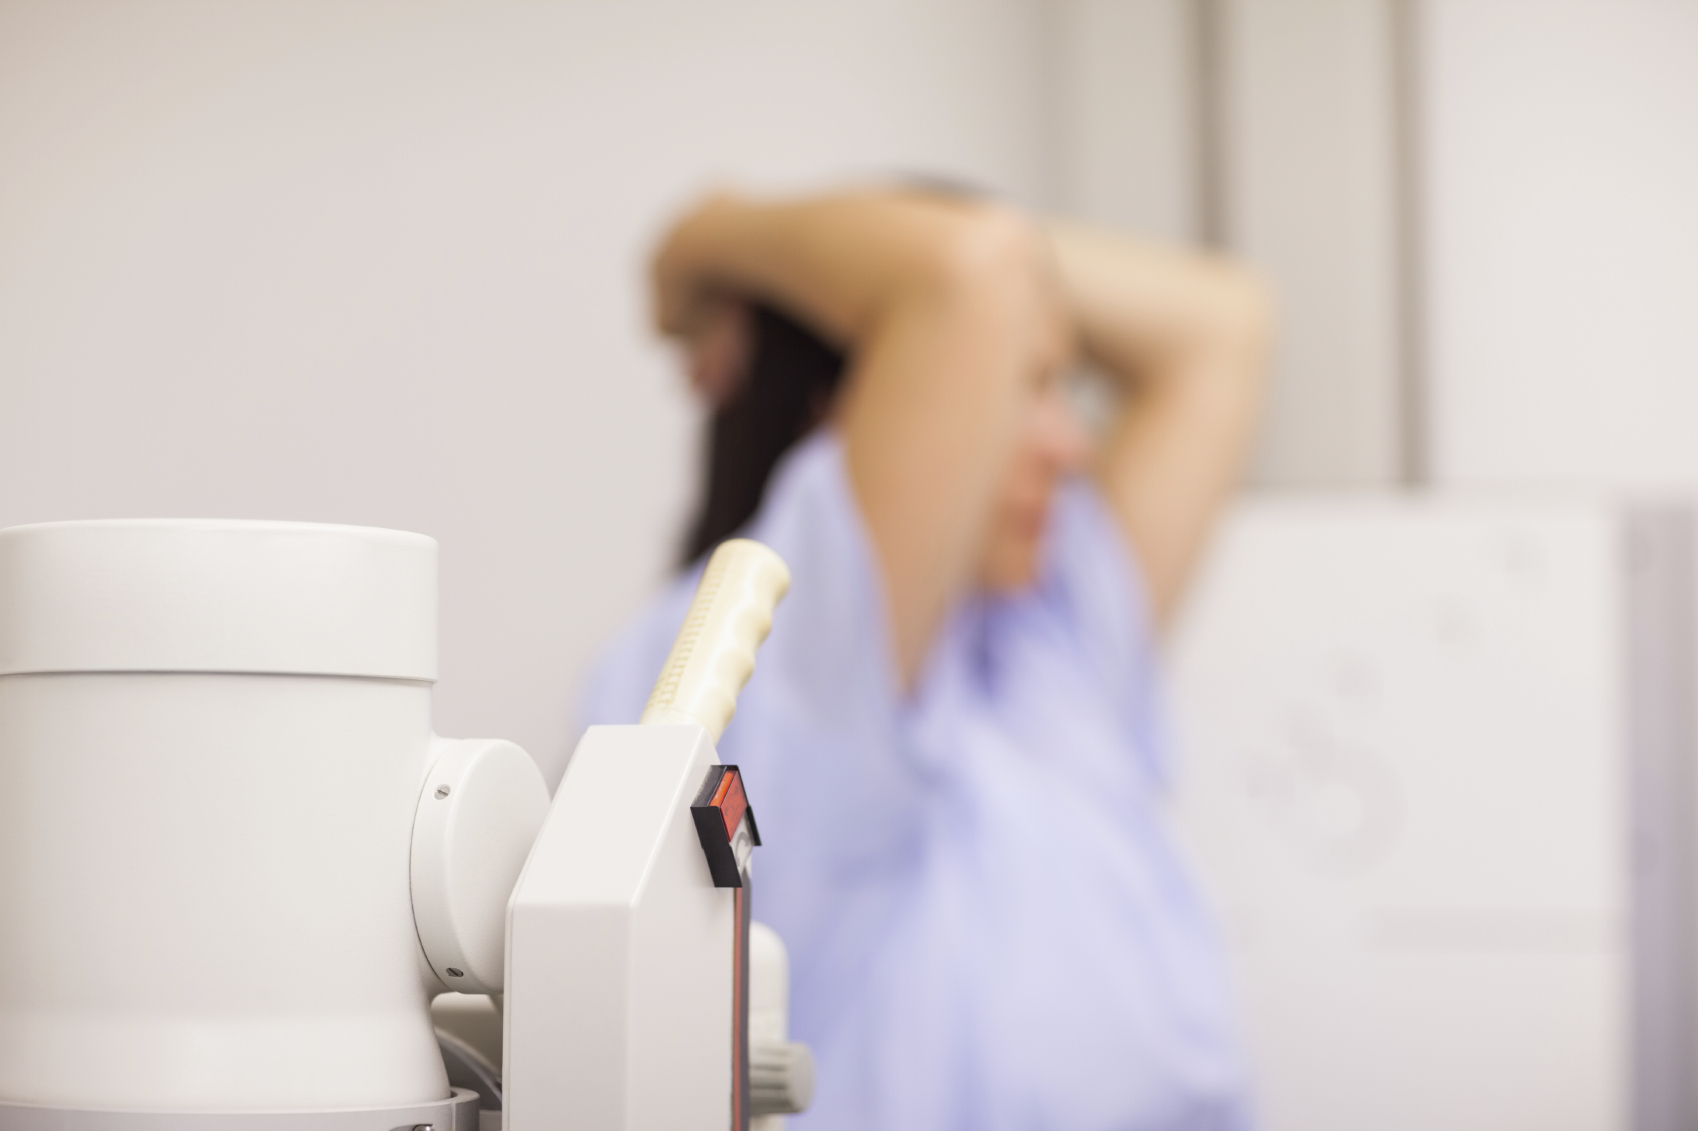 The American Cancer Society now recommends fewer mammograms due to their dangers. Discover the safe alternative.